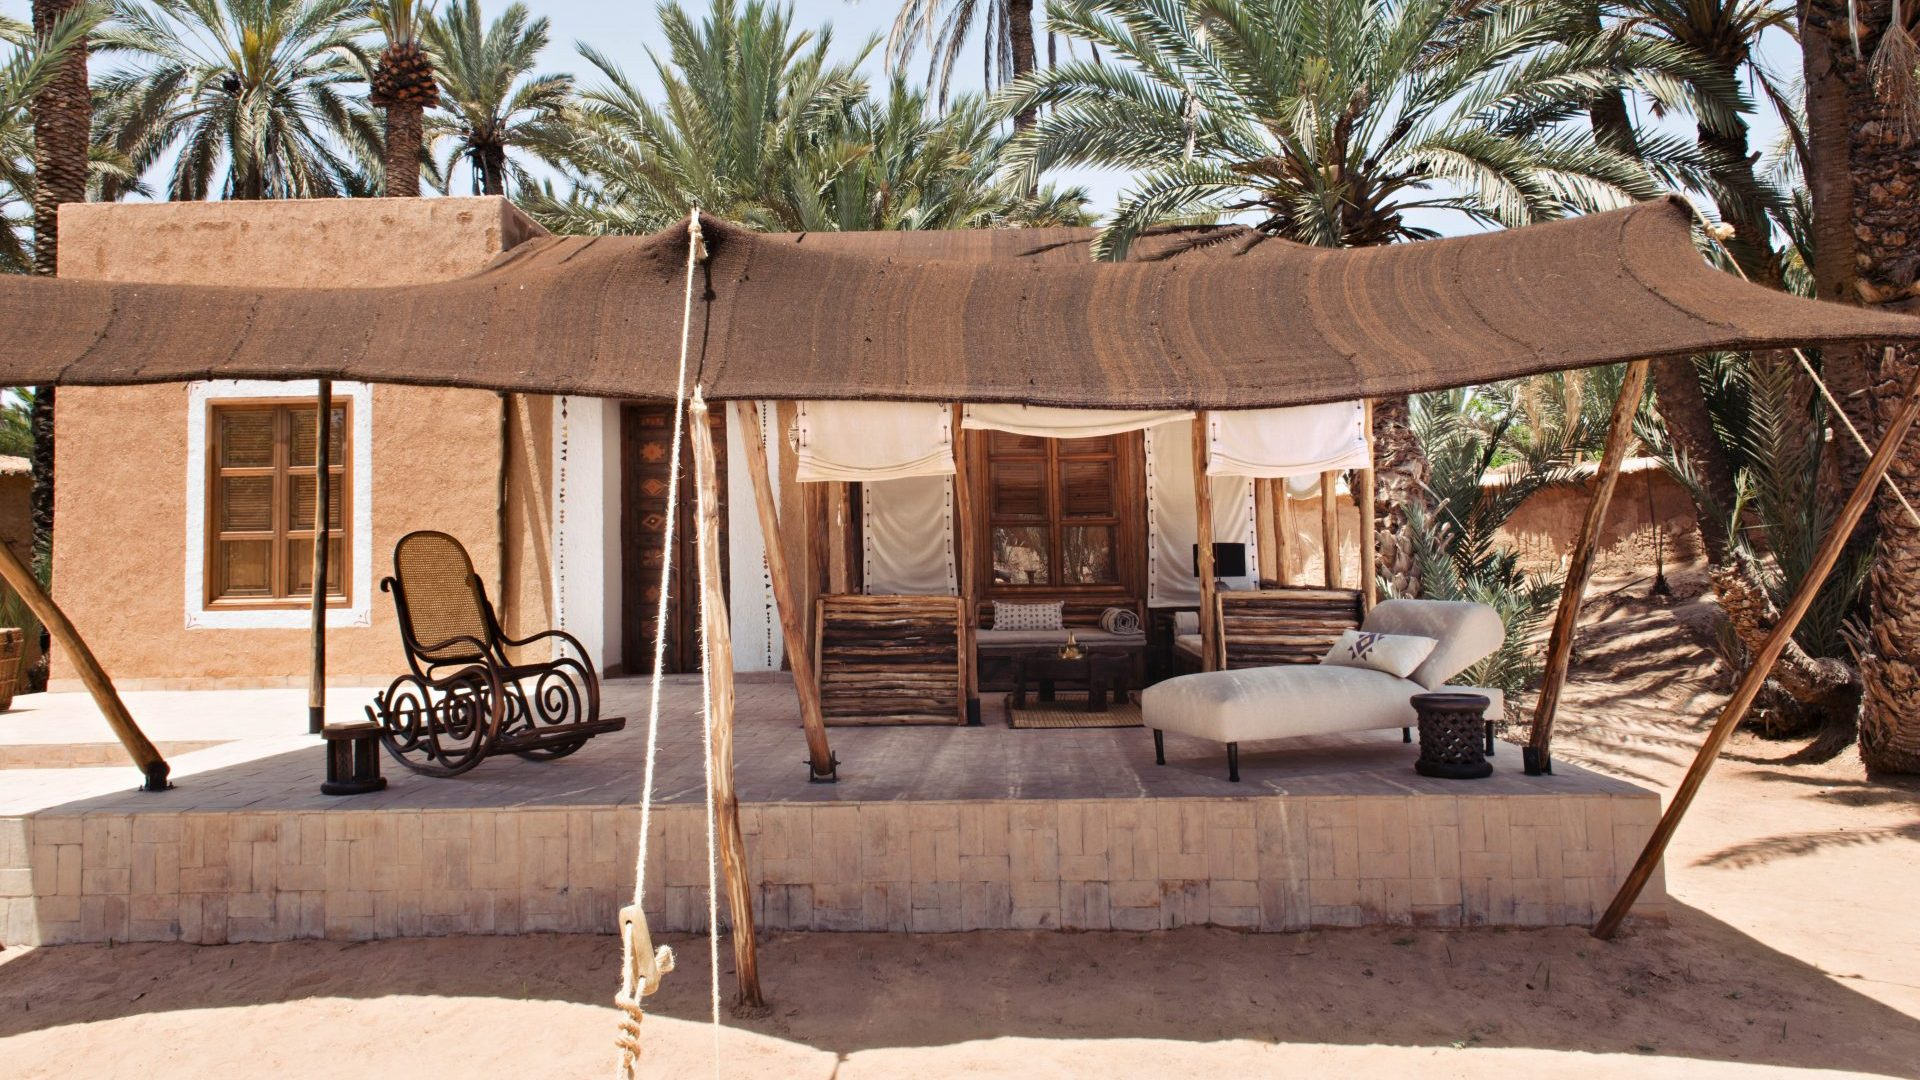 Oasis on the Memory Road in Southern Morocco